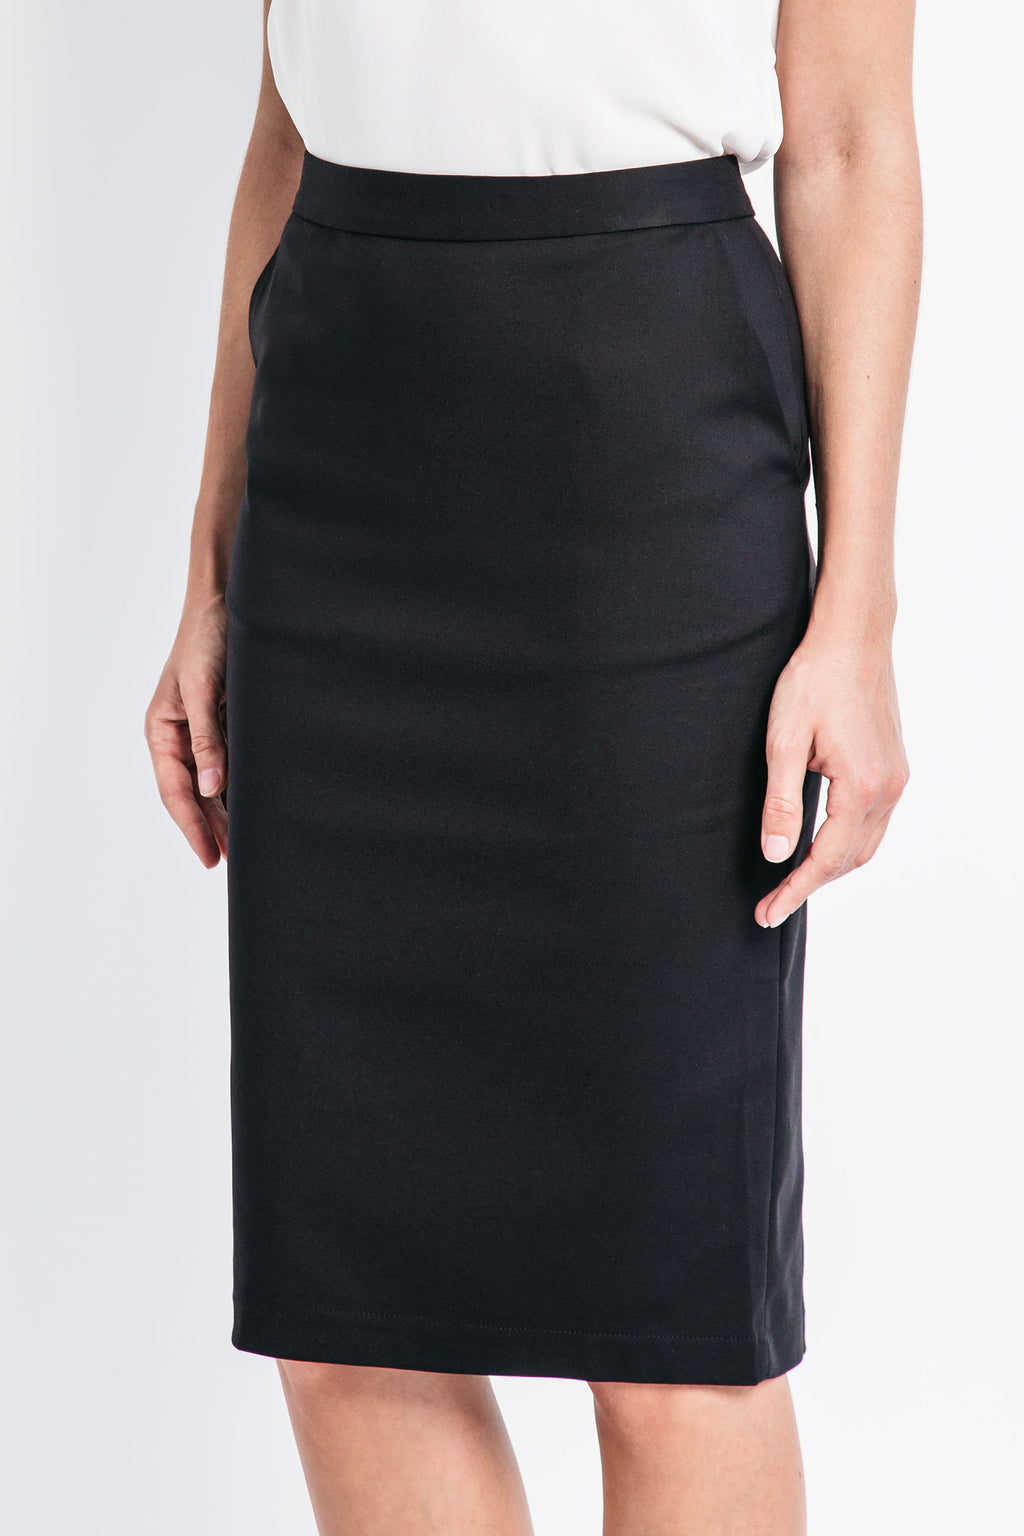 Classic Pencil Skirt with Pockets